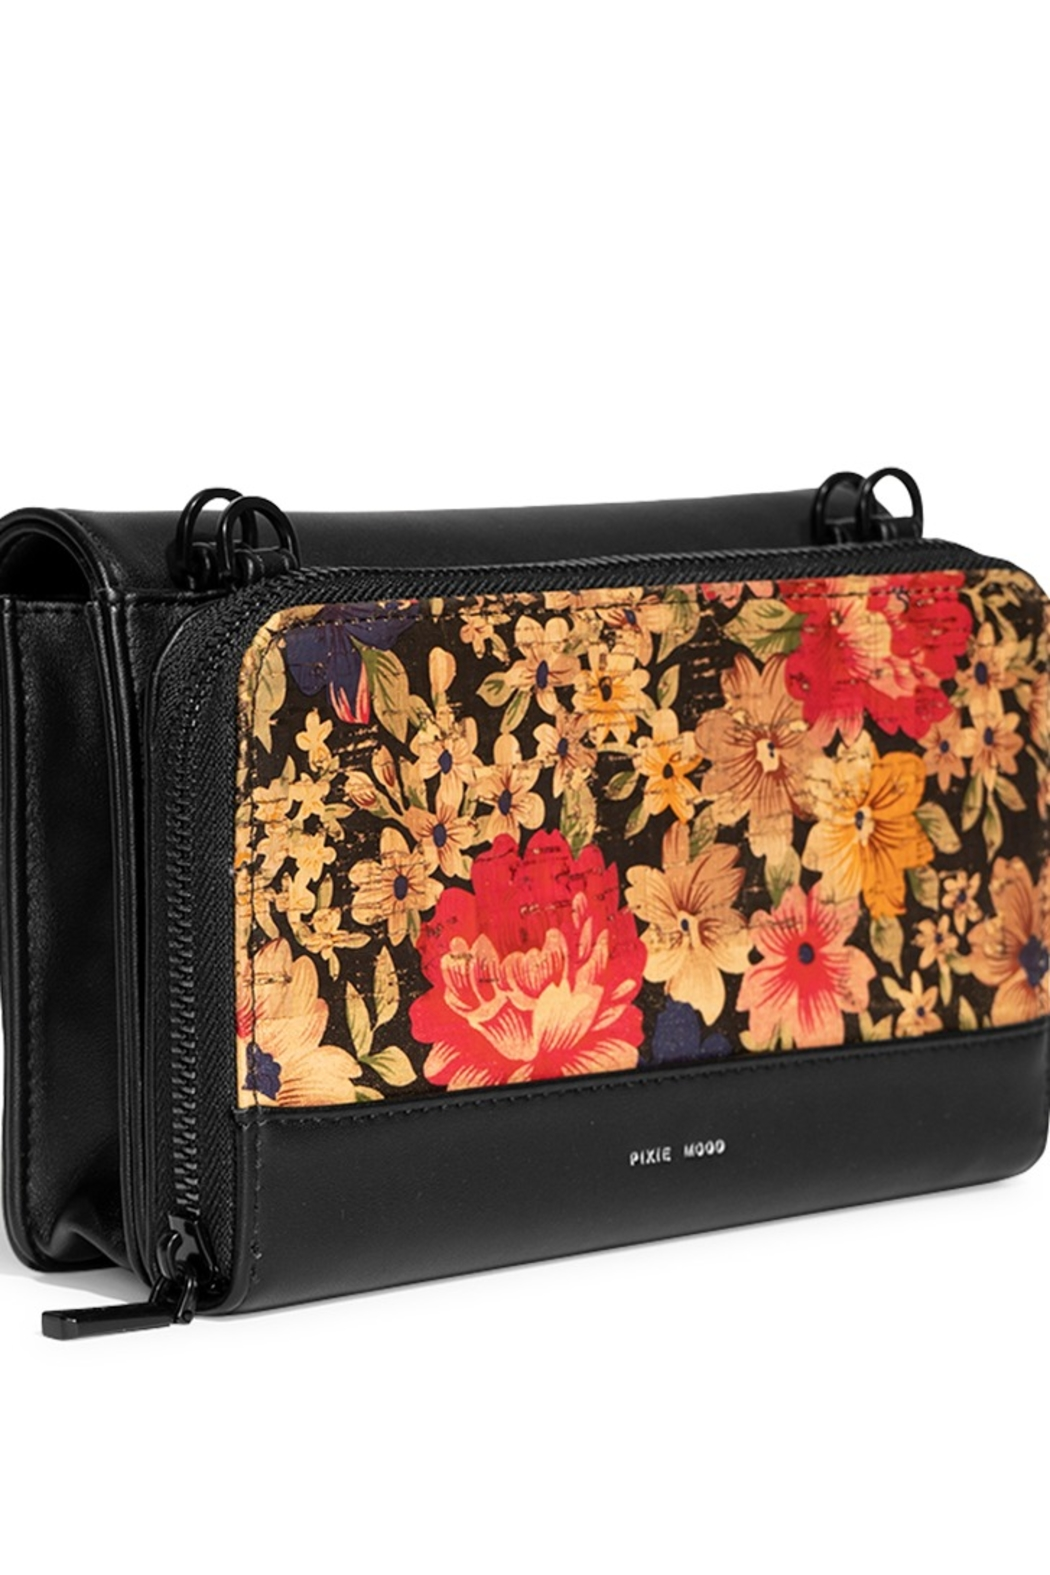 Pixie Mood PixieMood Jane Wallet 2-in1 Wallet Purse - Main Image